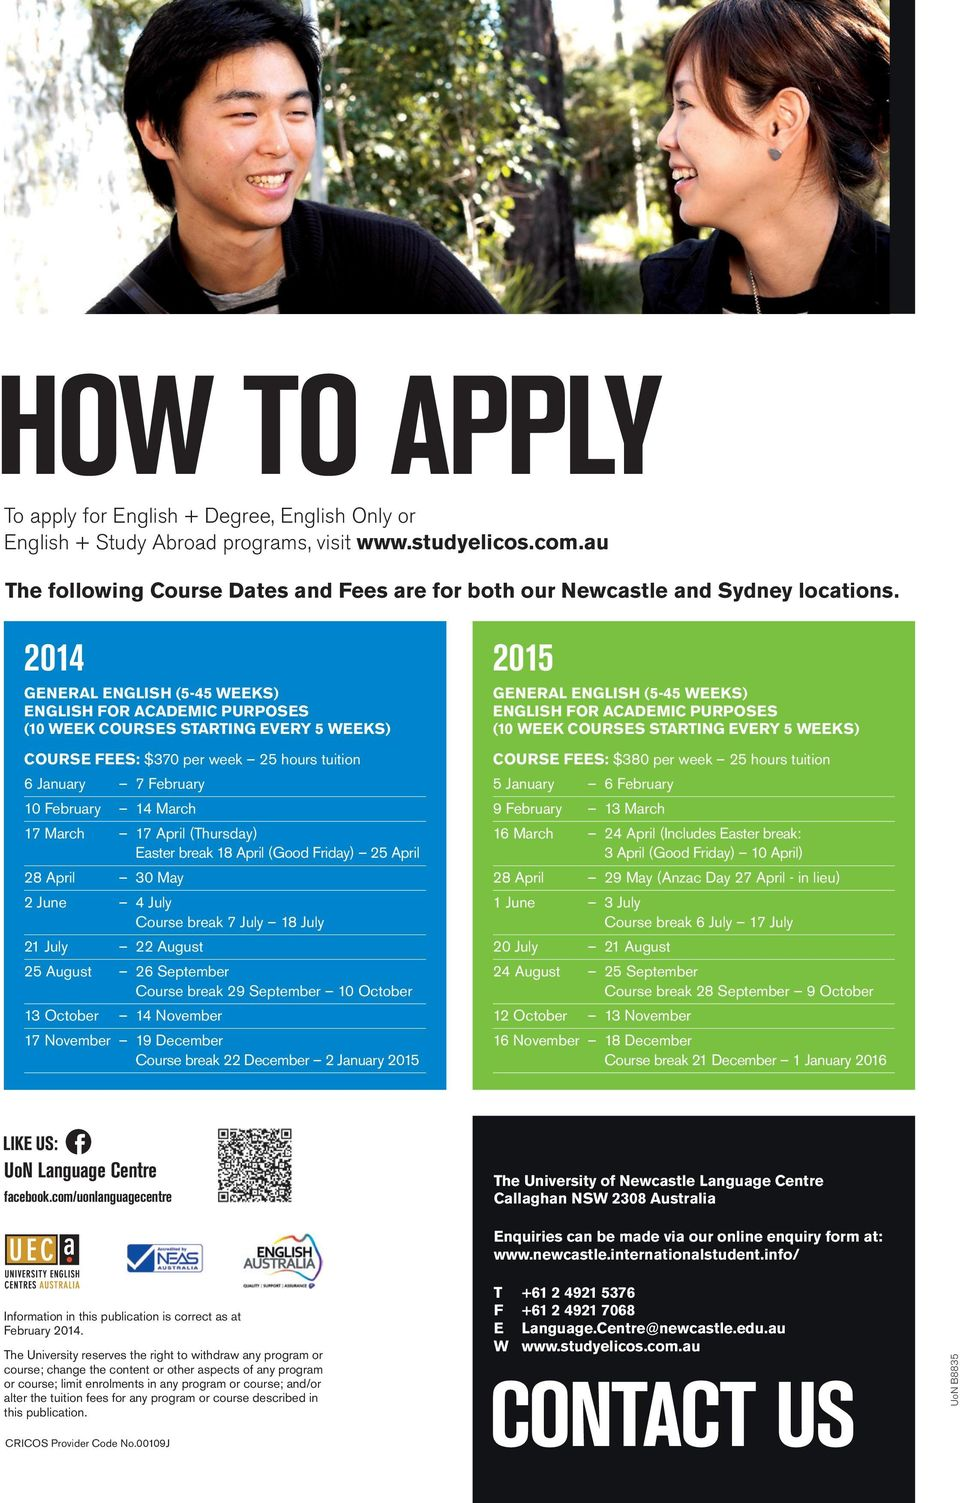 2014 General English (5-45 weeks) English for Academic Purposes (10 week courses starting every 5 weeks) COURSE Fees: $370 per week 25 hours tuition 6 January 7 February 10 February 14 March 17 March